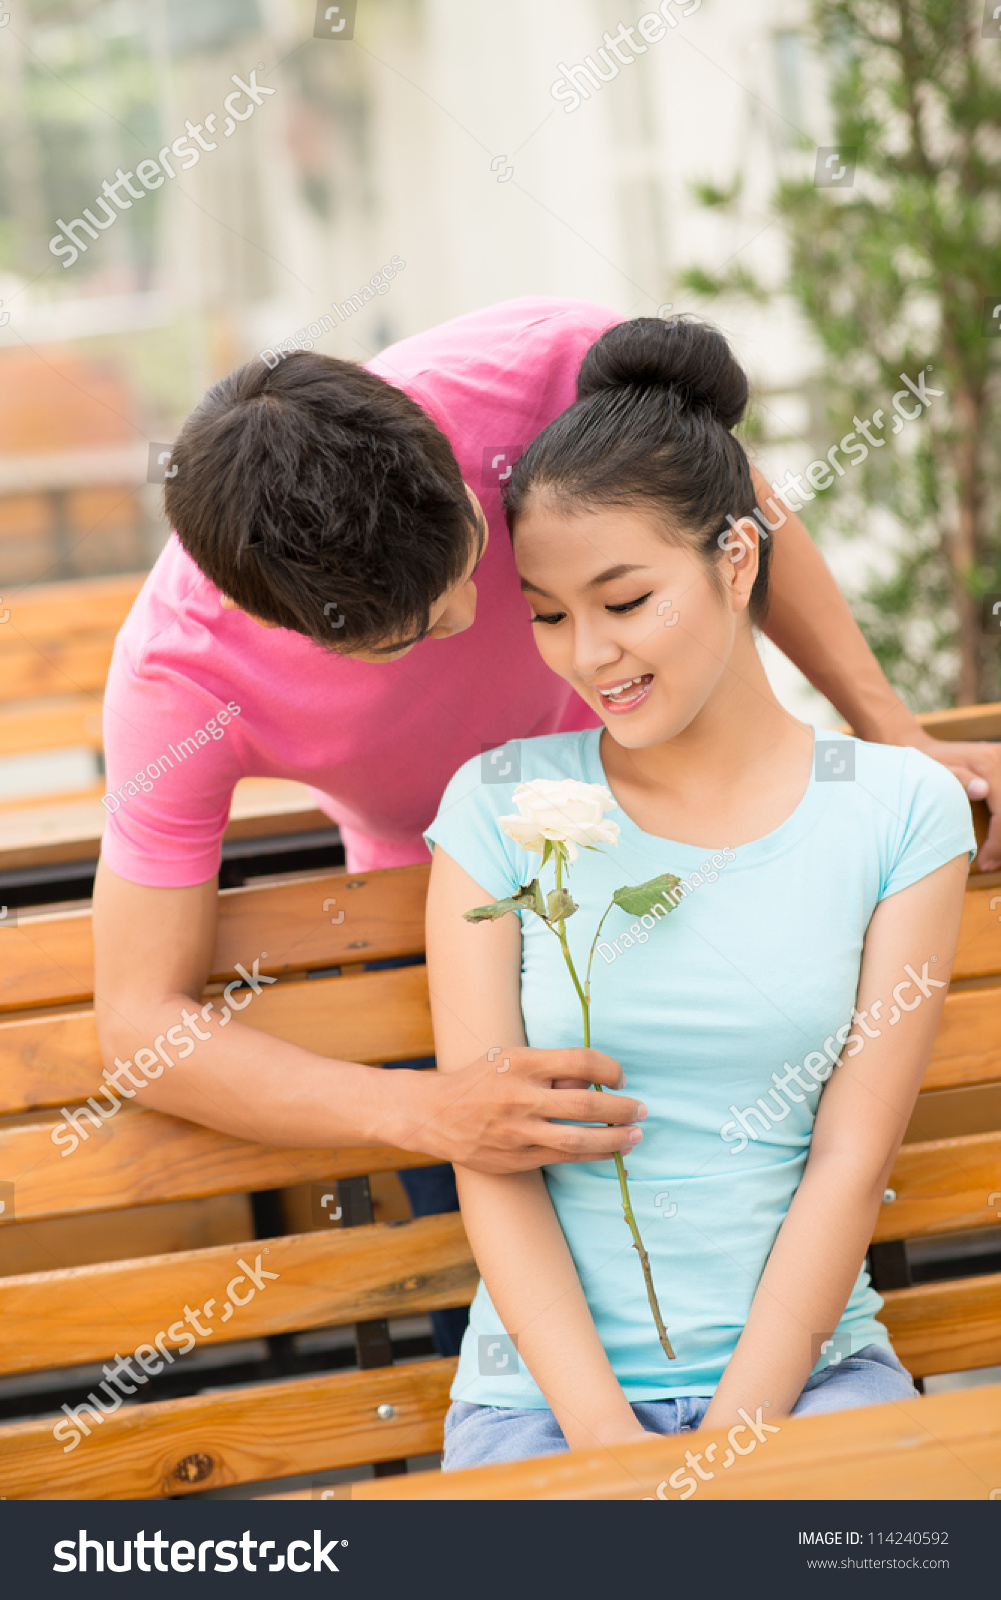 seaside park asian dating website Luvfreecom is a 100% free online dating and personal ads site there are a lot of seaside park singles searching romance, friendship, fun and more dates join our seaside park dating site, view free personal ads of single people and talk with them in chat rooms in a real time.